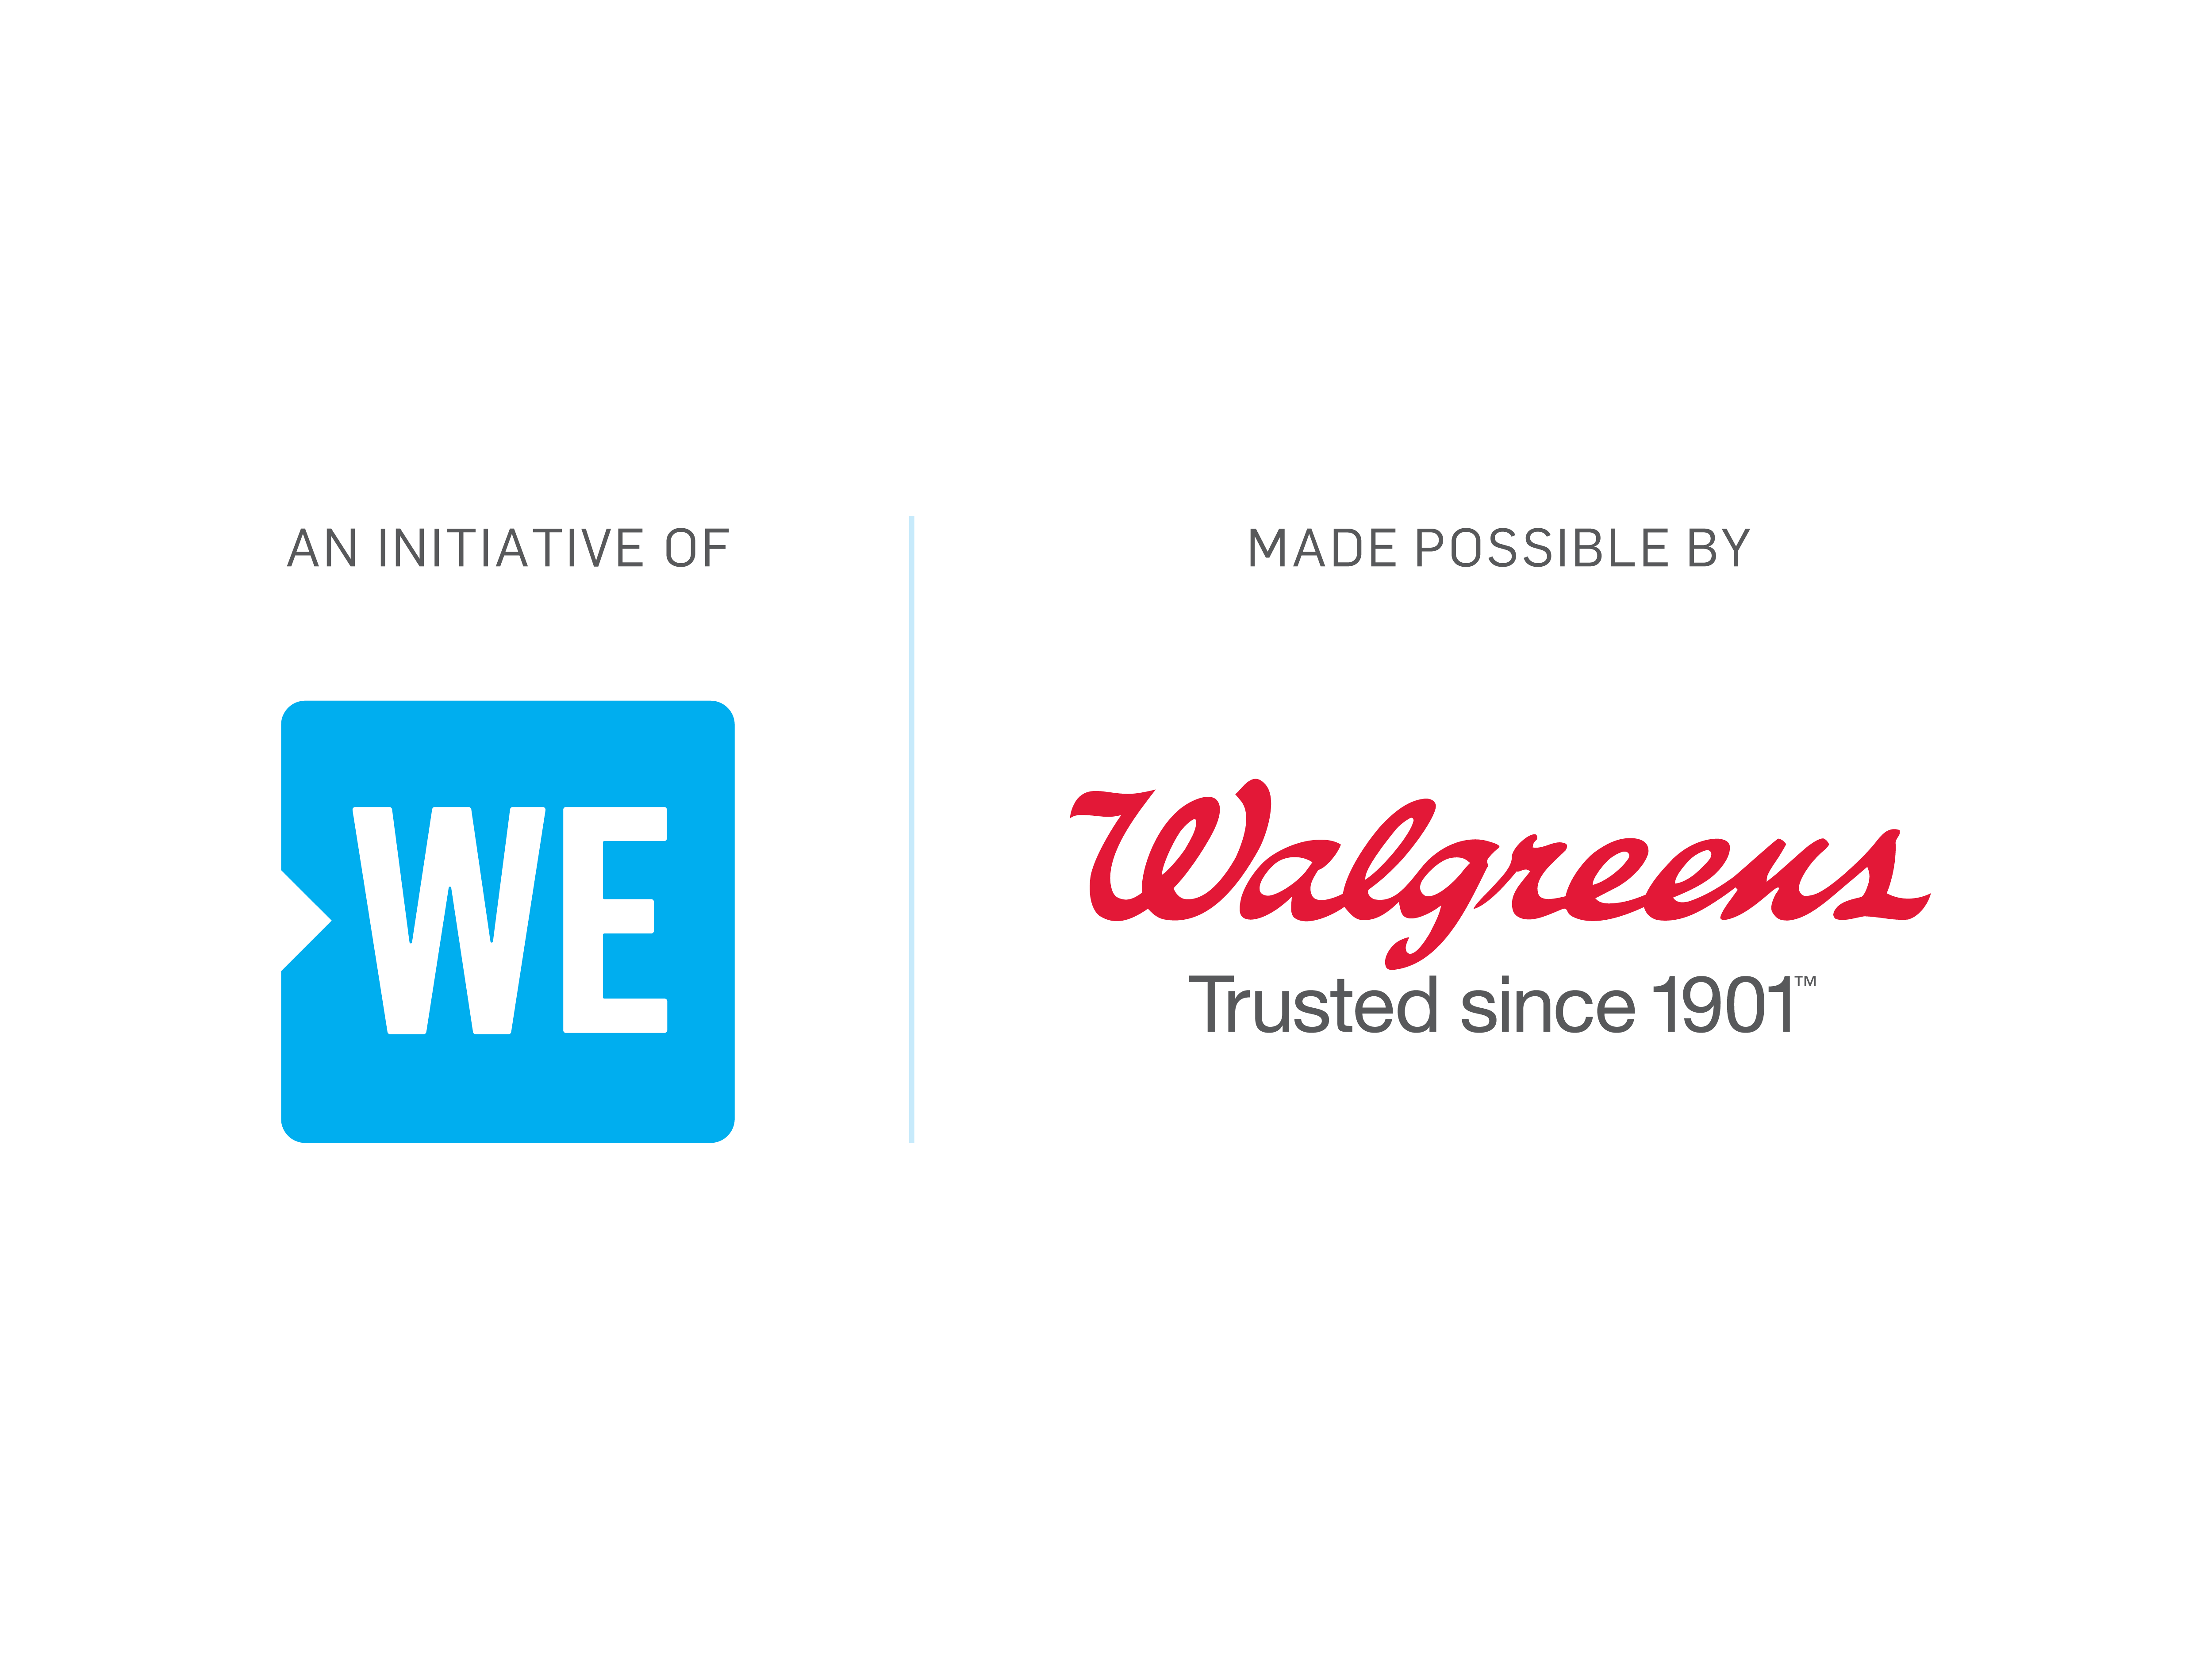 An initiative of WE | Made possible by Walgreens